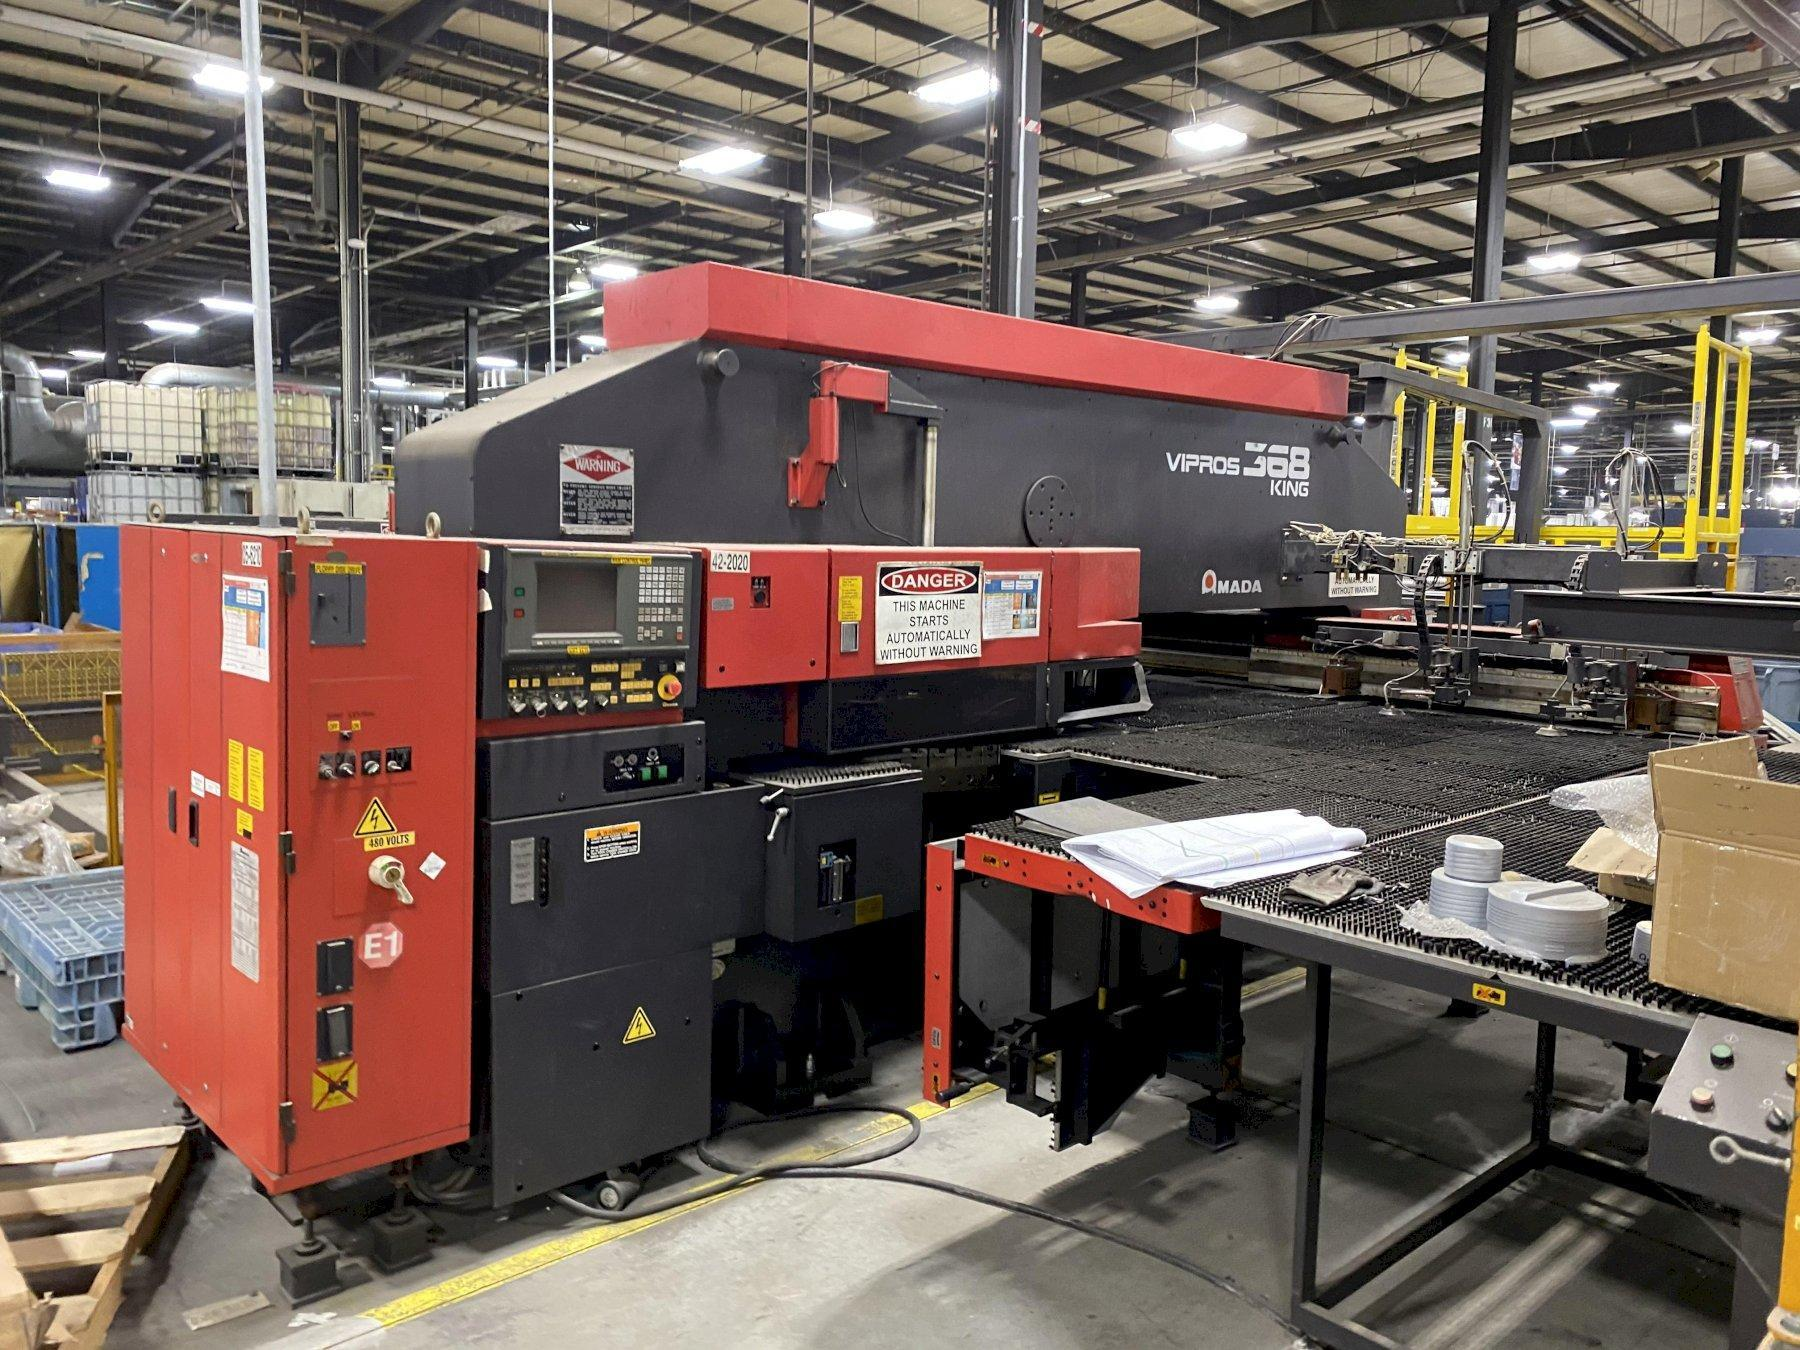 33 TON AMADA VIPROS 368 KING CNC TURRET PUNCH WITH LOADING TOWER AND UNLOADER SYSTEM. STOCK # 2001220